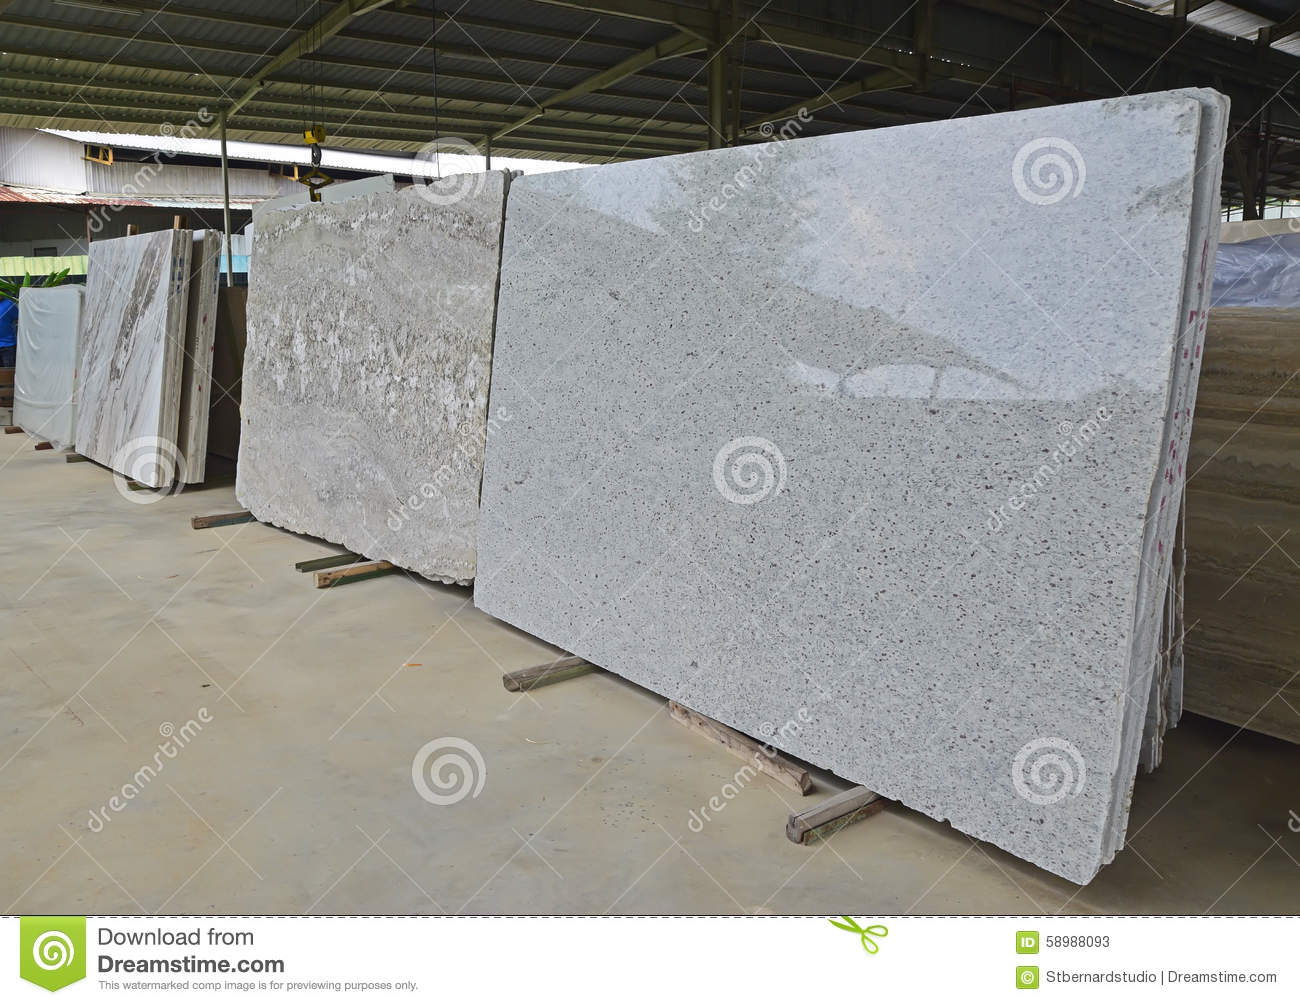 An array of newly arrived natural stones in a warehouse